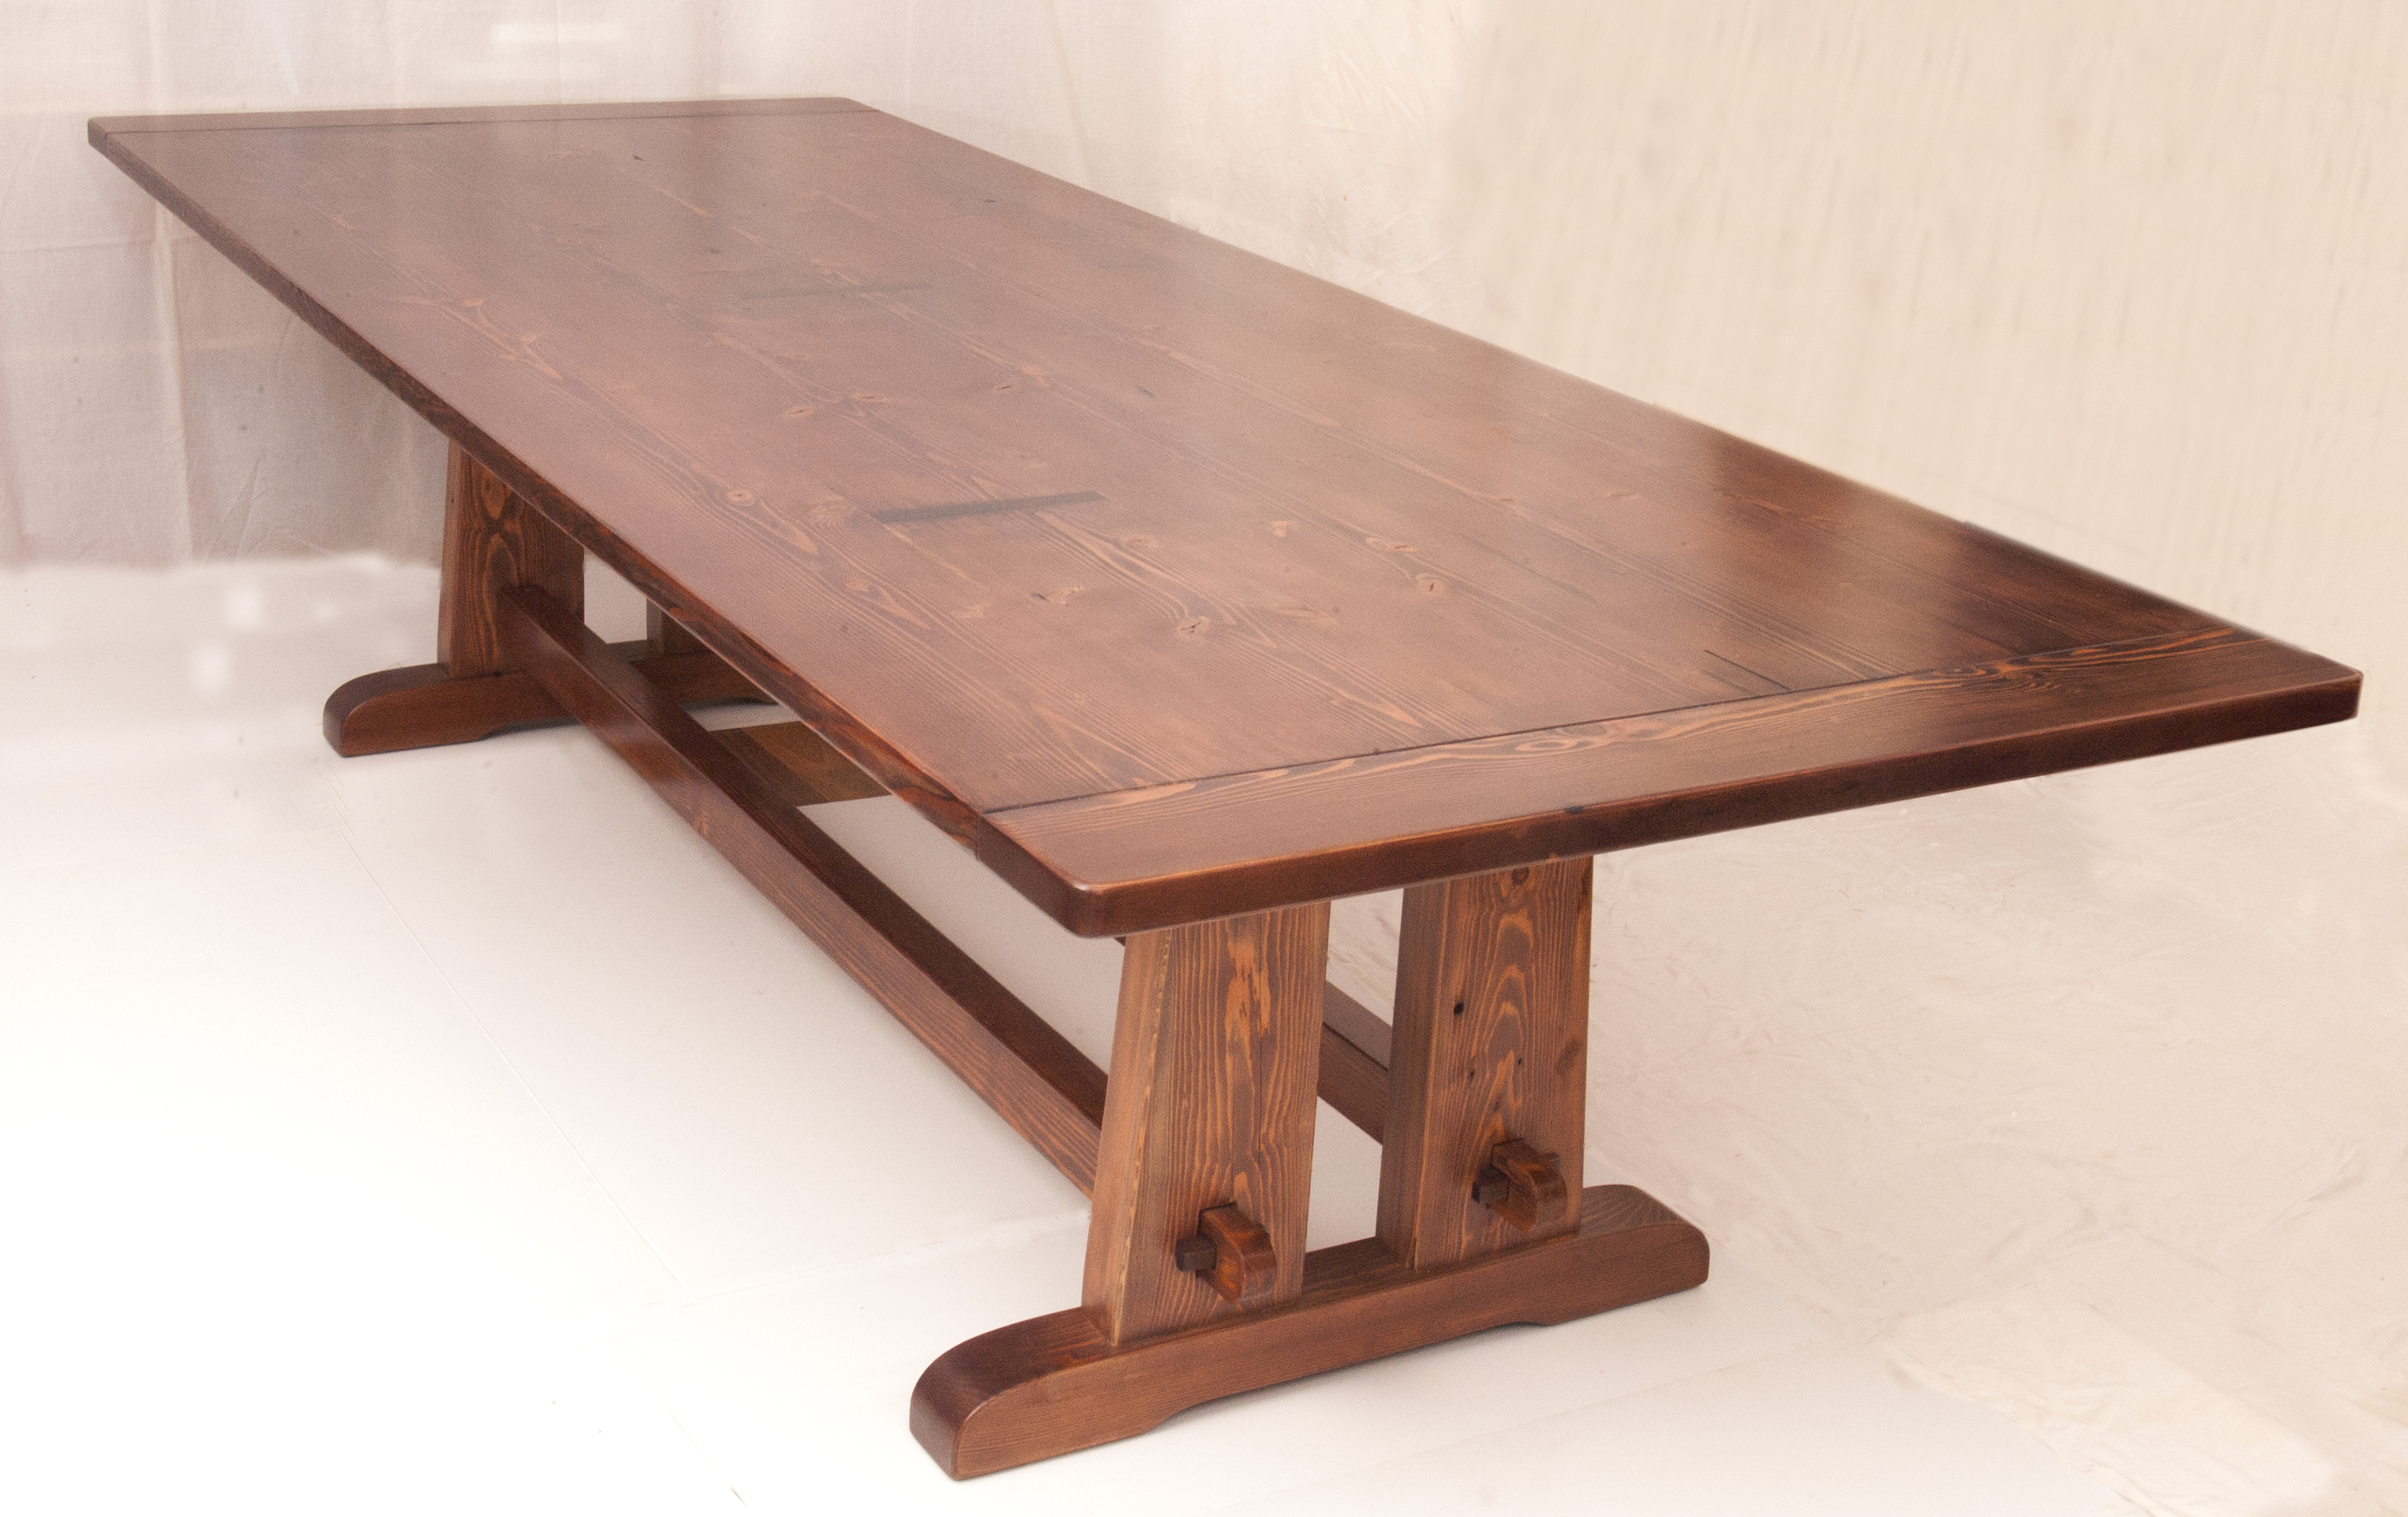 best wood for furniture. Wood Furniture Types. Why Wooden Is Considered Best For All Types Of Décor